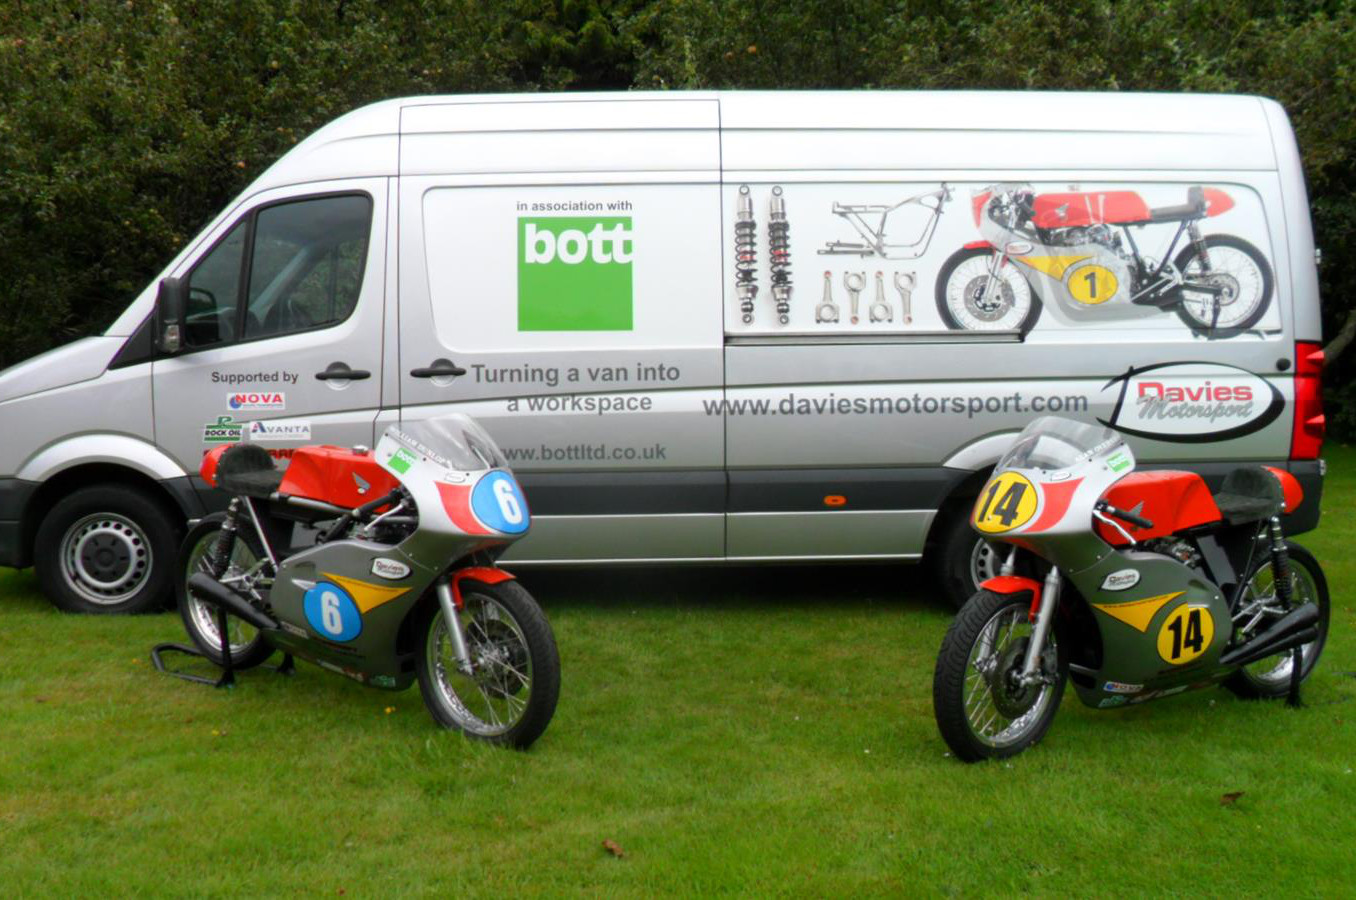 Davies Motorsport gear up for Isle of Man Classic TT